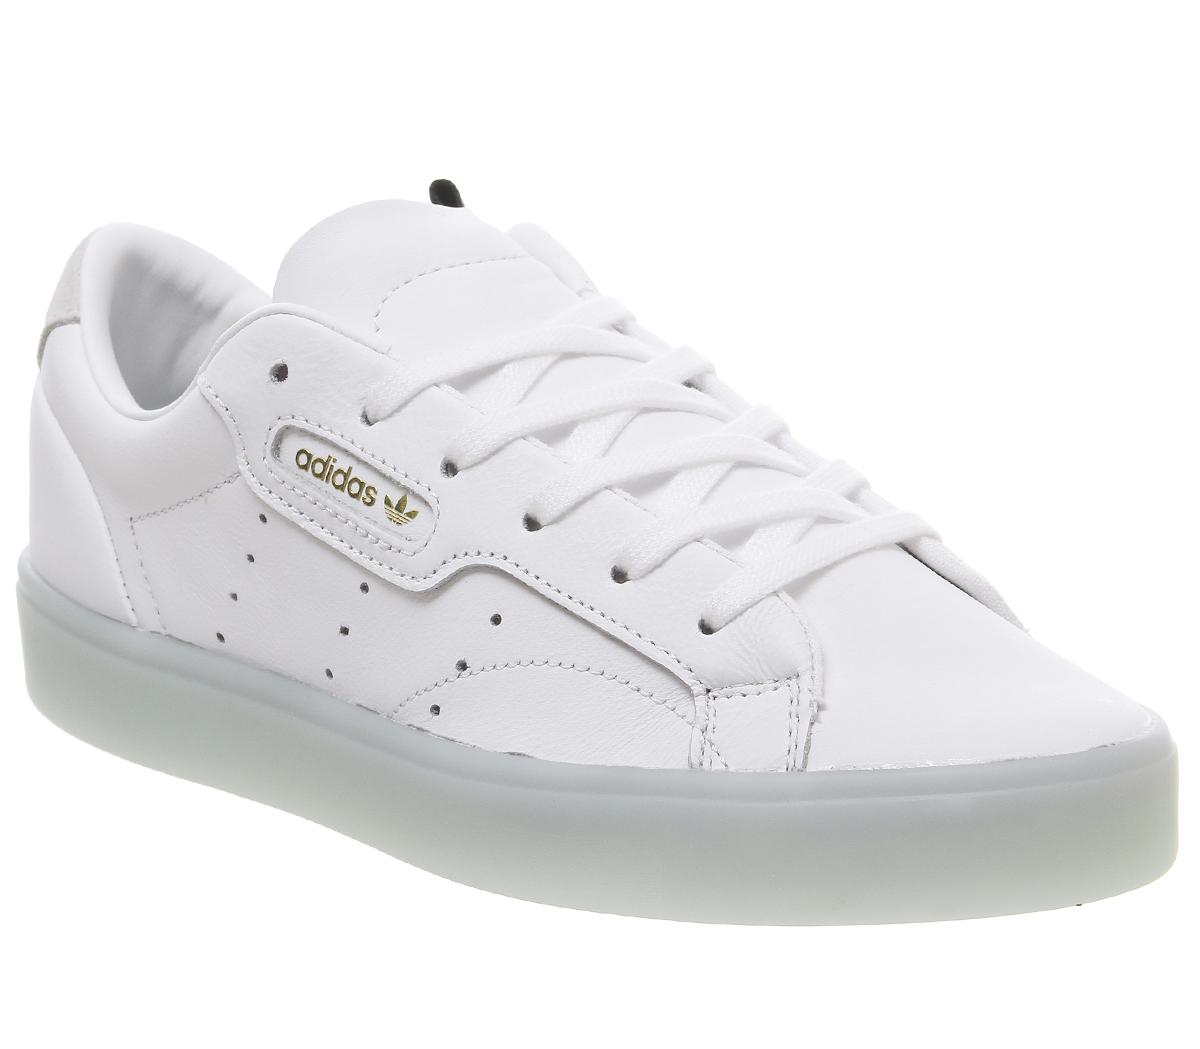 Adidas Superstar Womens Trainers In Ice Mint White | adidas